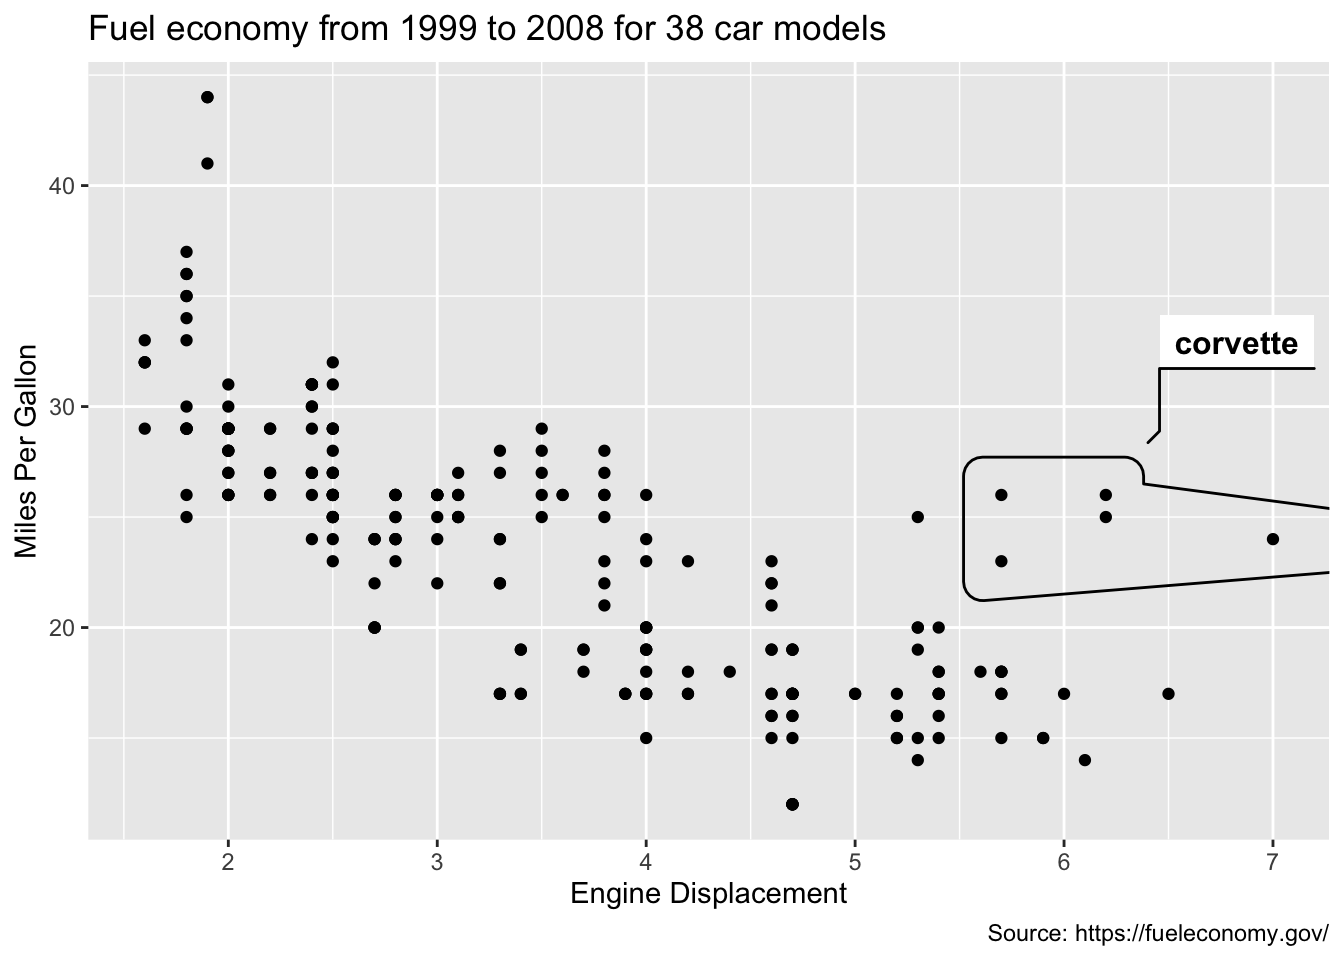 Using the ggforce package to annotate the corvette's in this dataset.